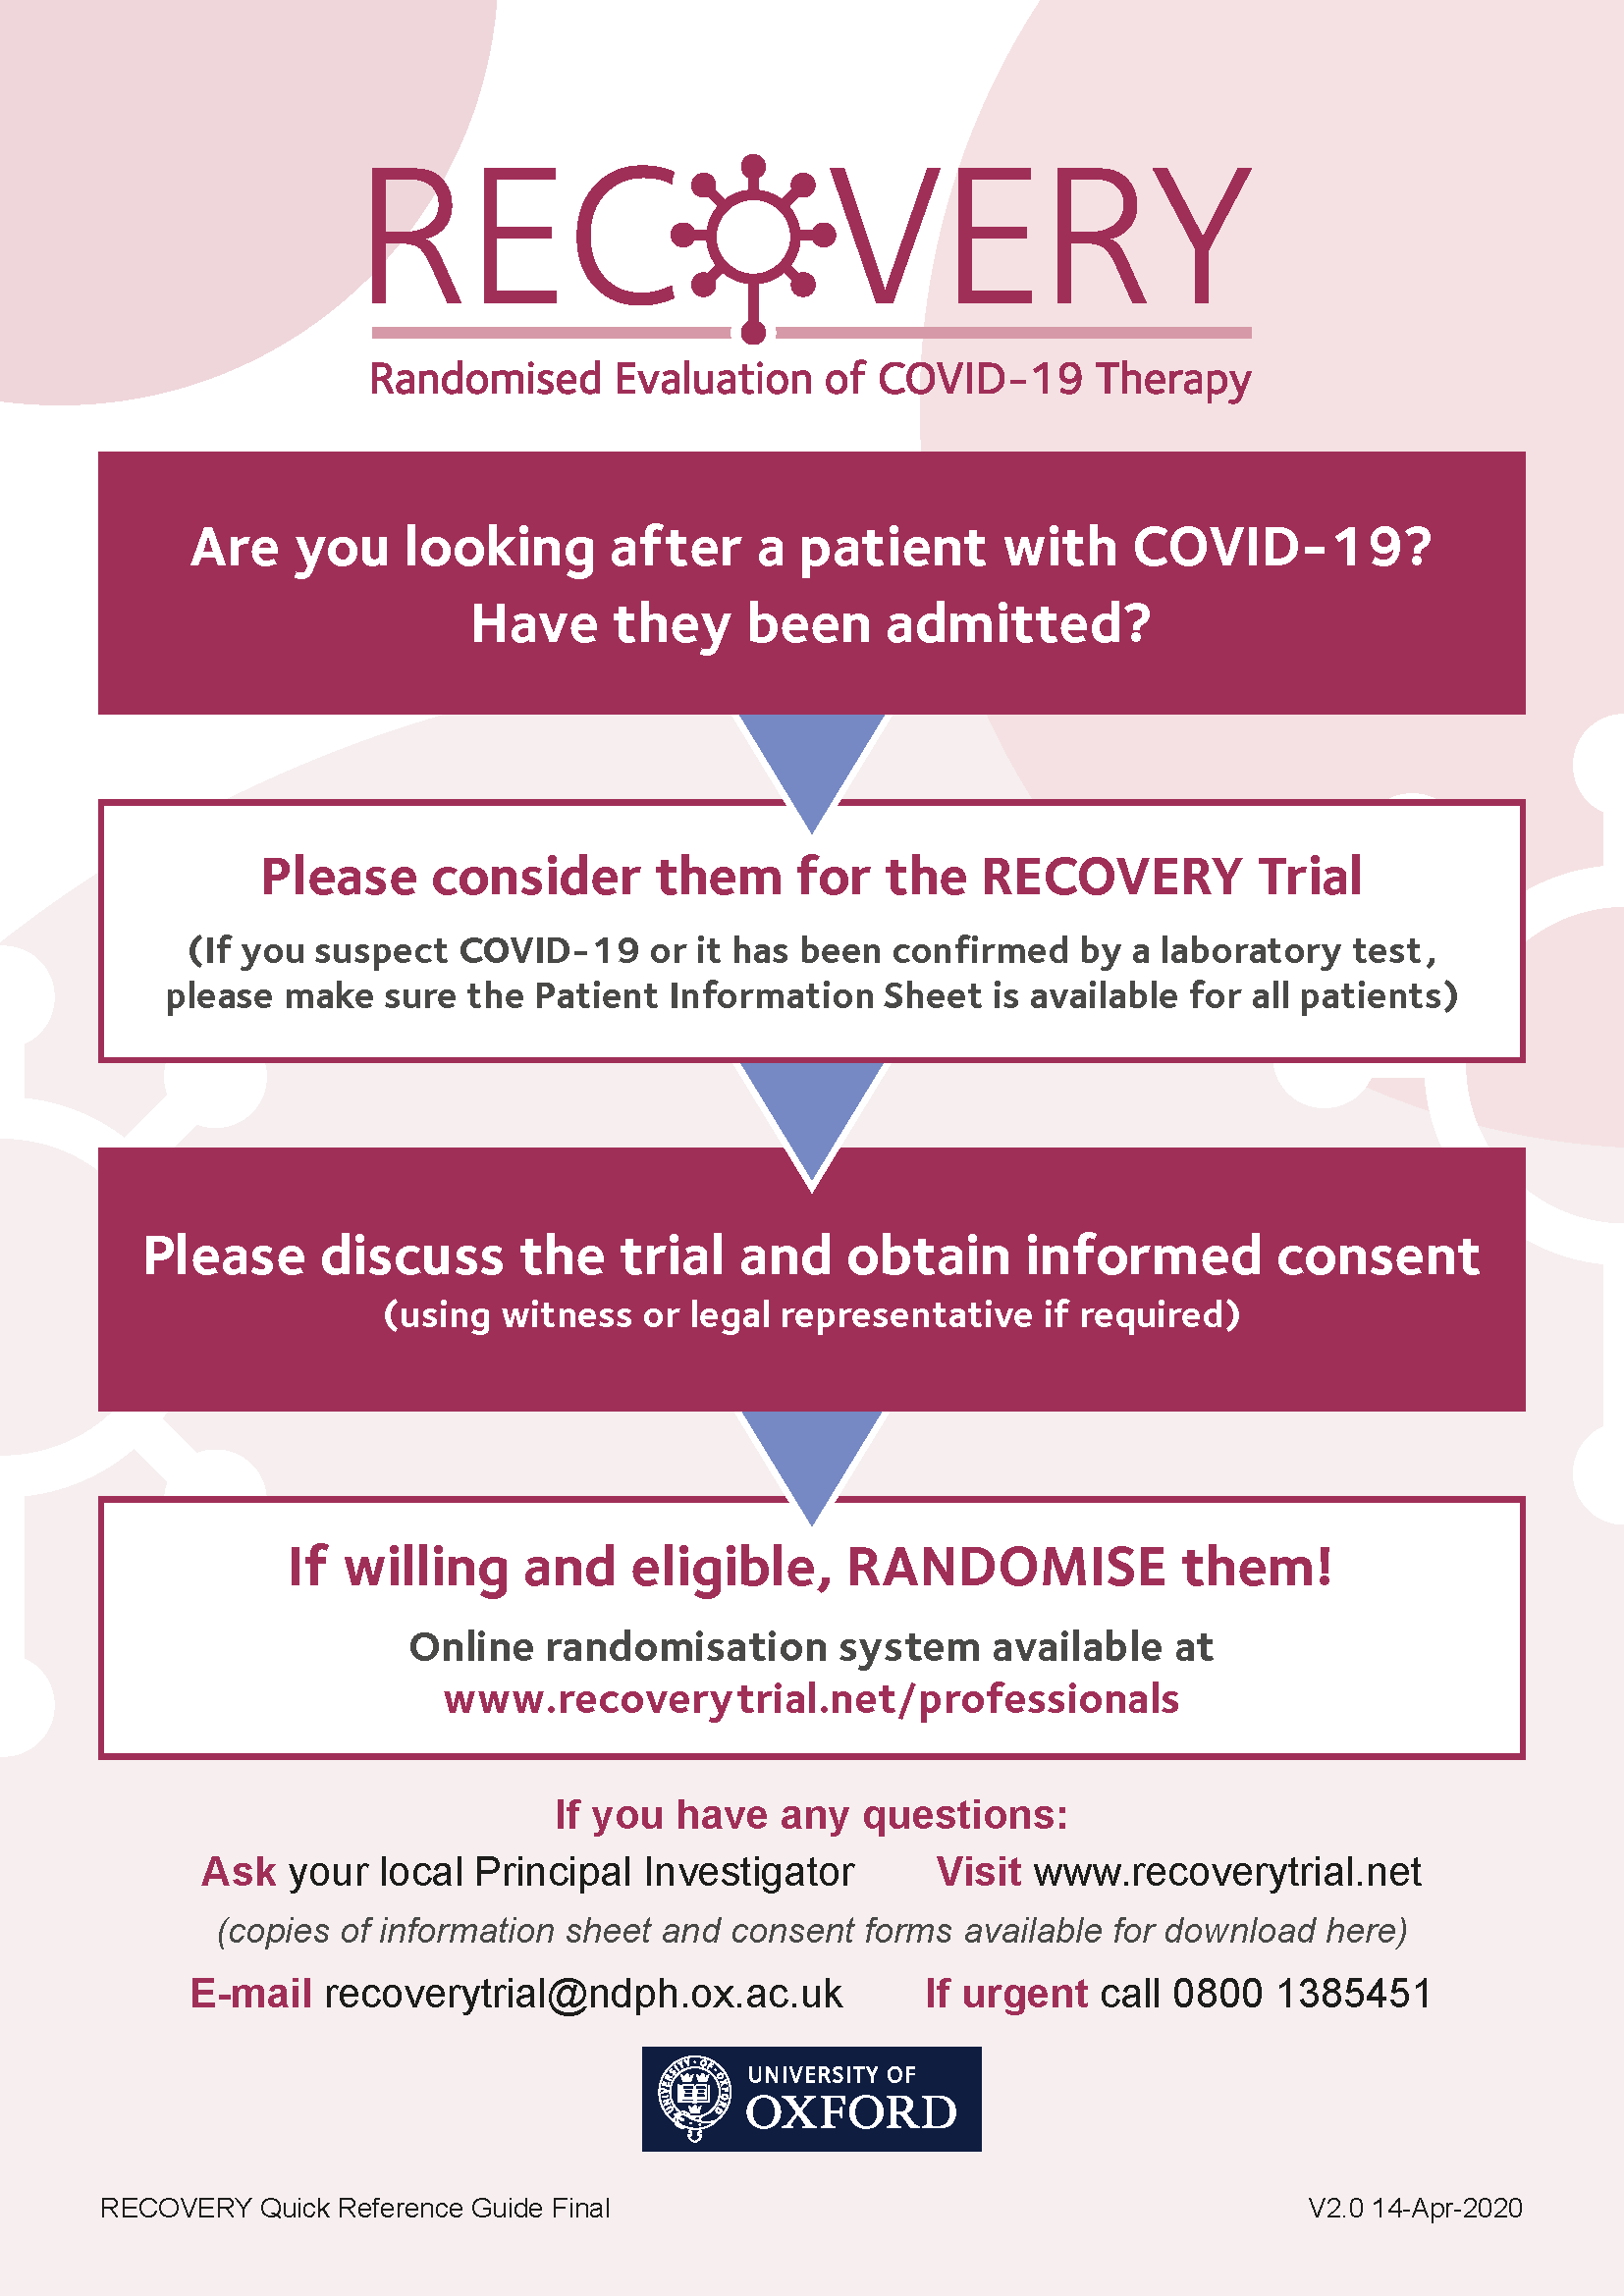 RECOVERY - Quick Reference Guide v2.0 FINAL 140420 15.41.png